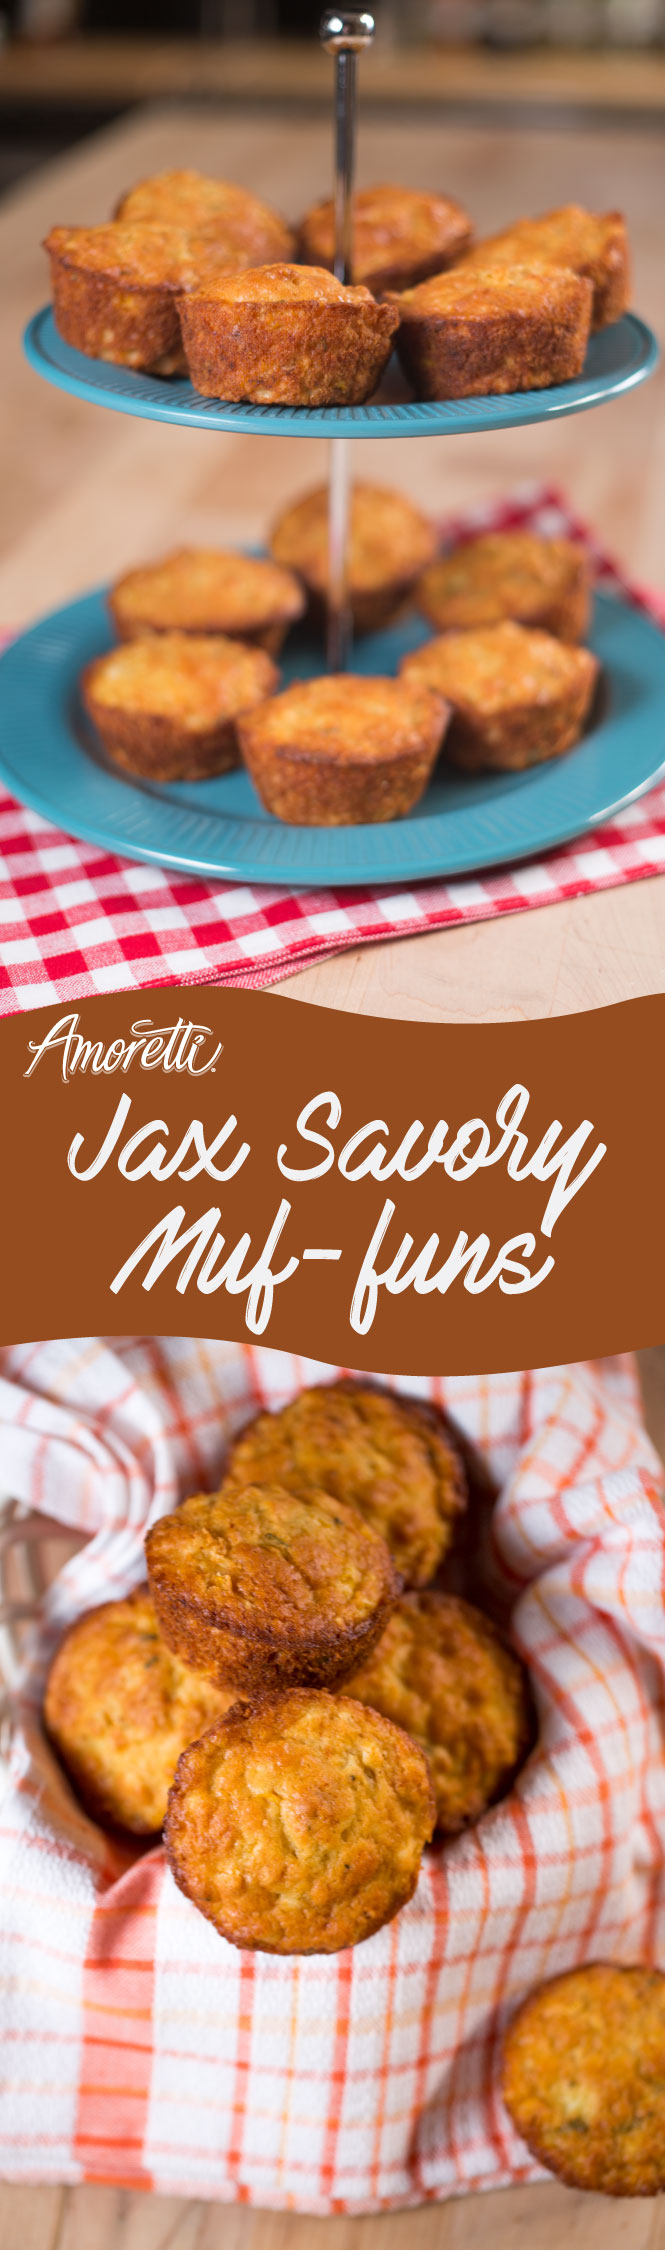 Delicious savory muffins for a barbecue or picnic!